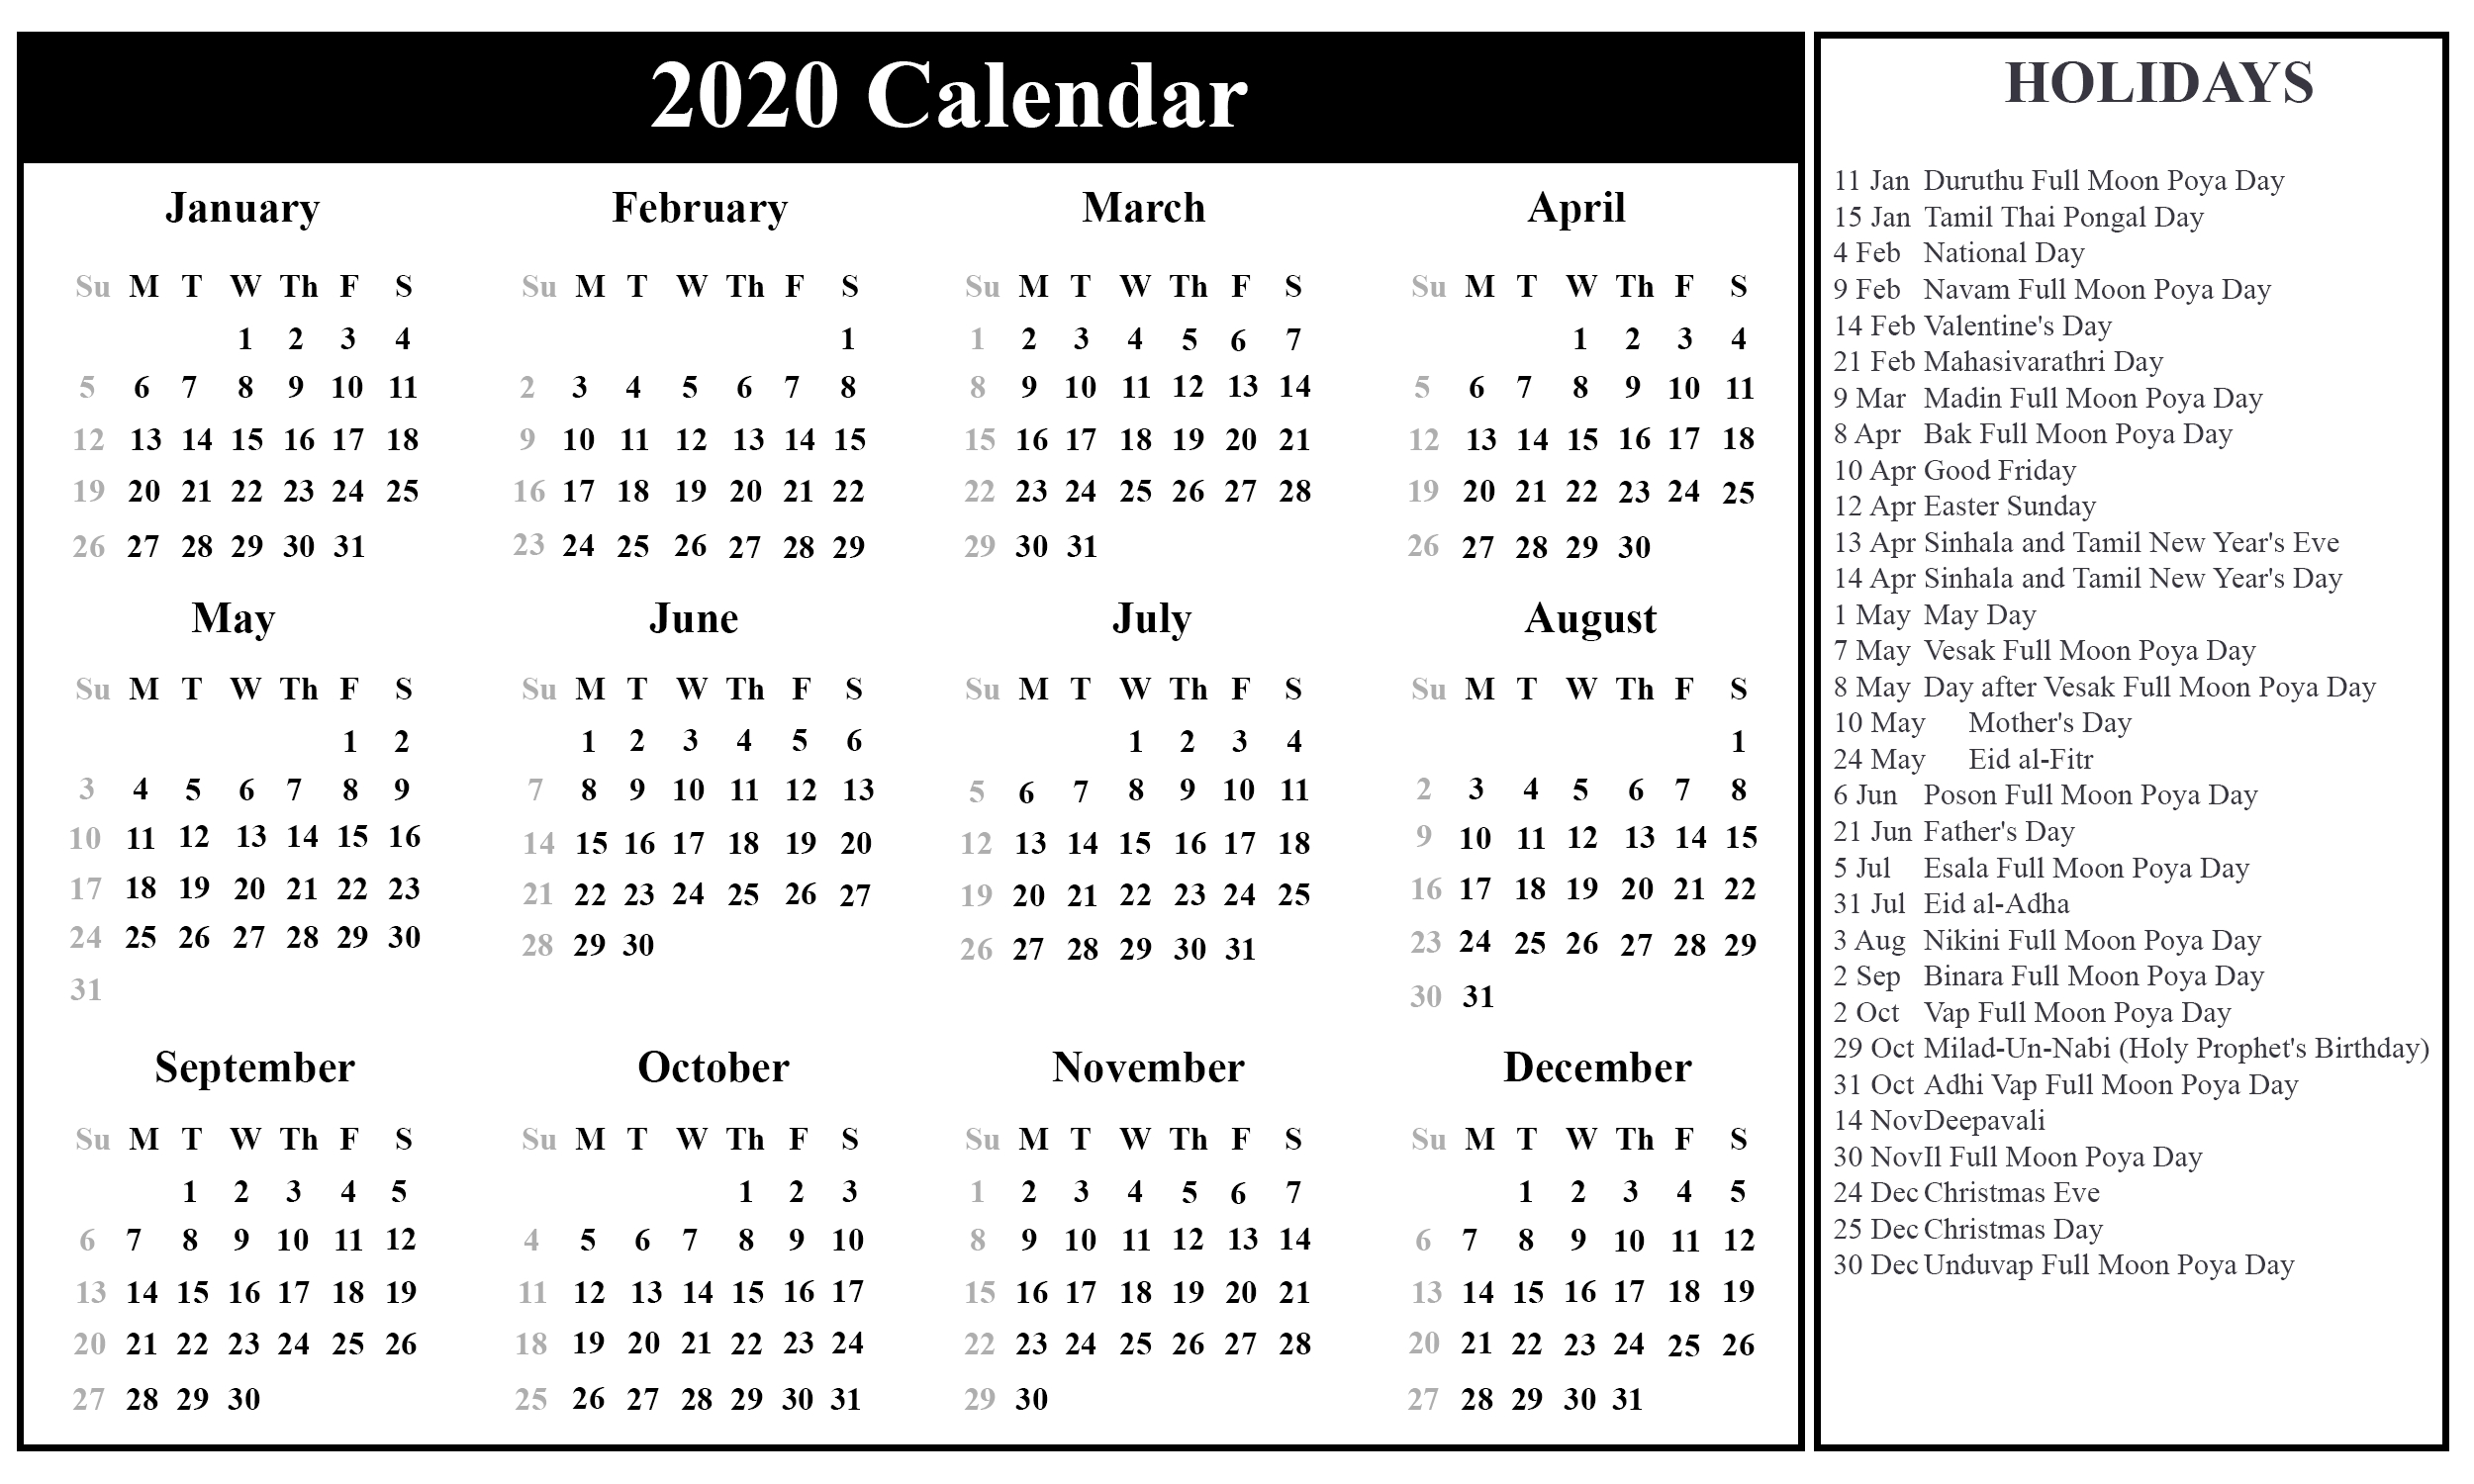 Free Printable Sri Lanka Calendar 2020 With Holidays | Printable in Sri Lanka Calendar Of September With Holidays